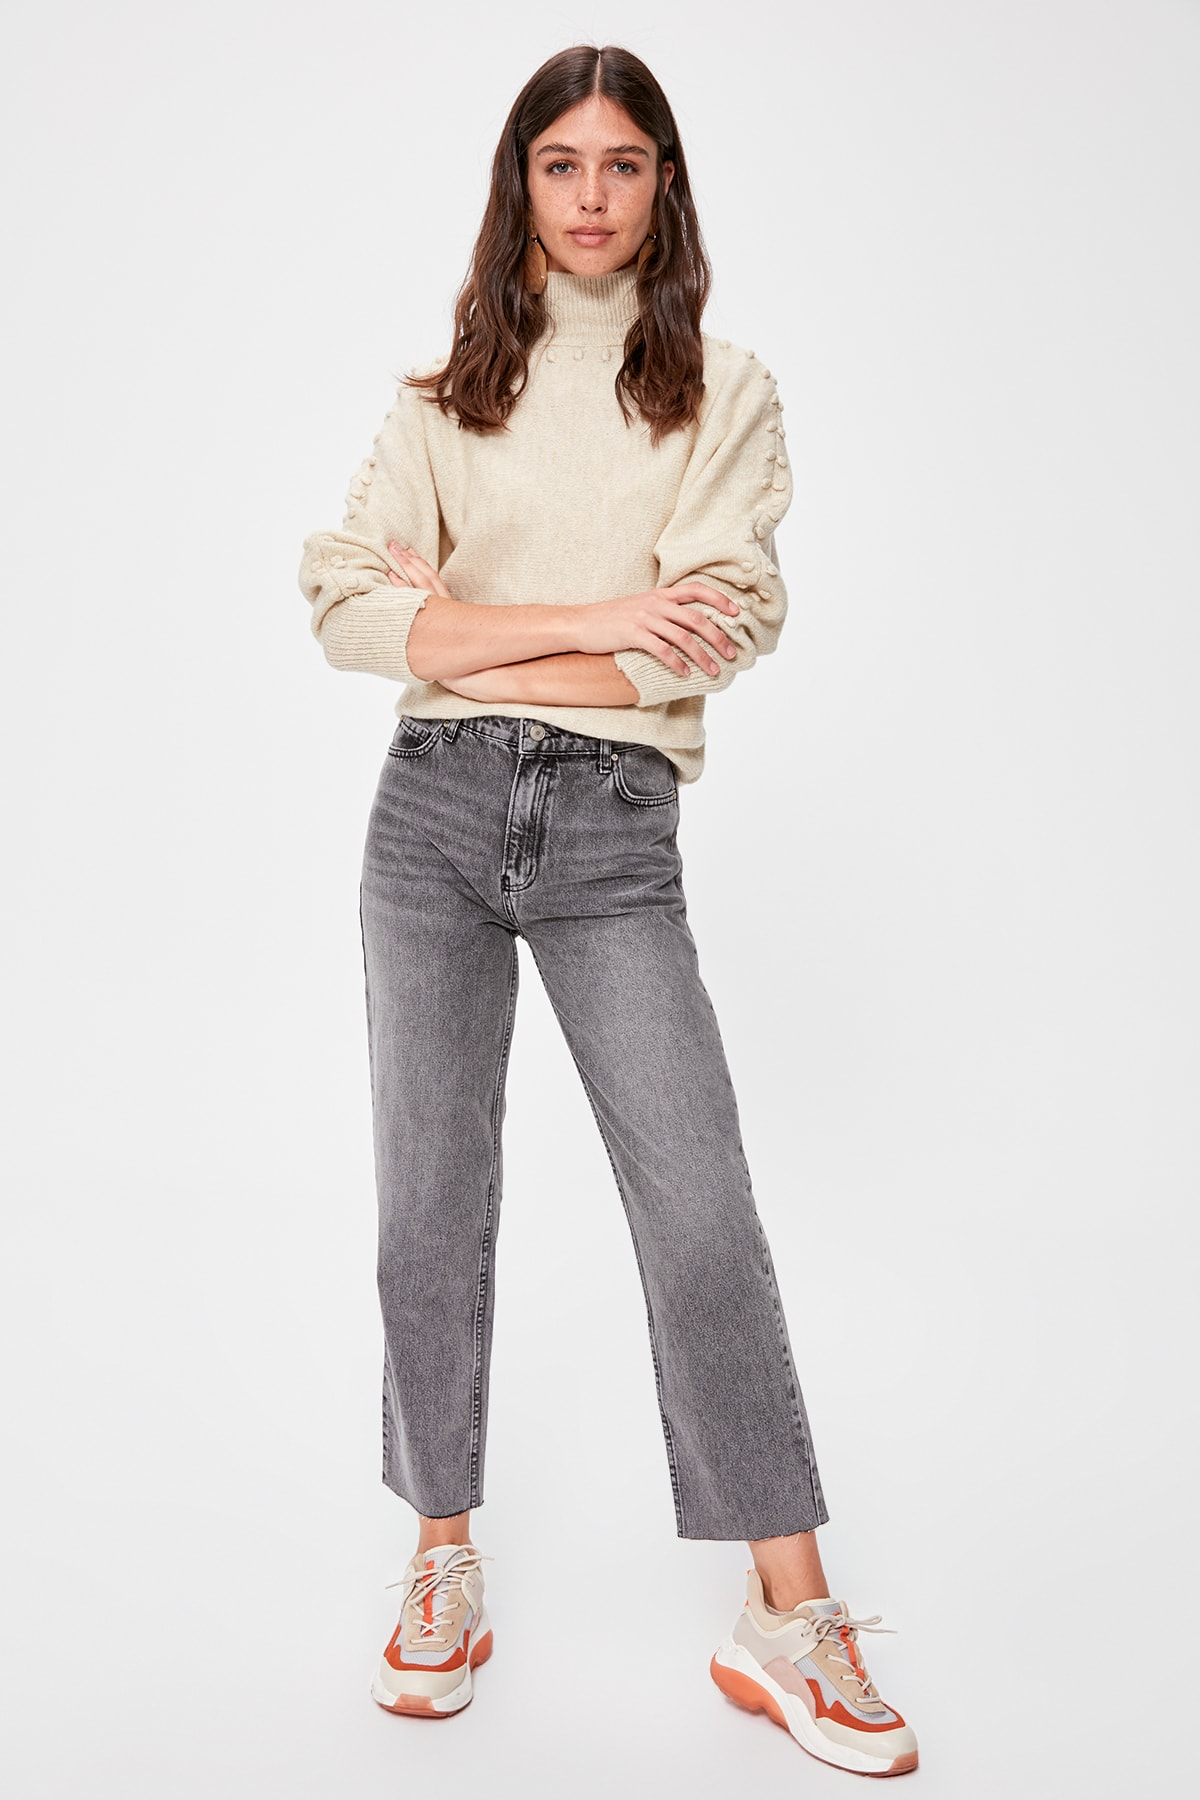 Trendyol-Flushing High Bel Straight Jeans TWOAW20JE0143